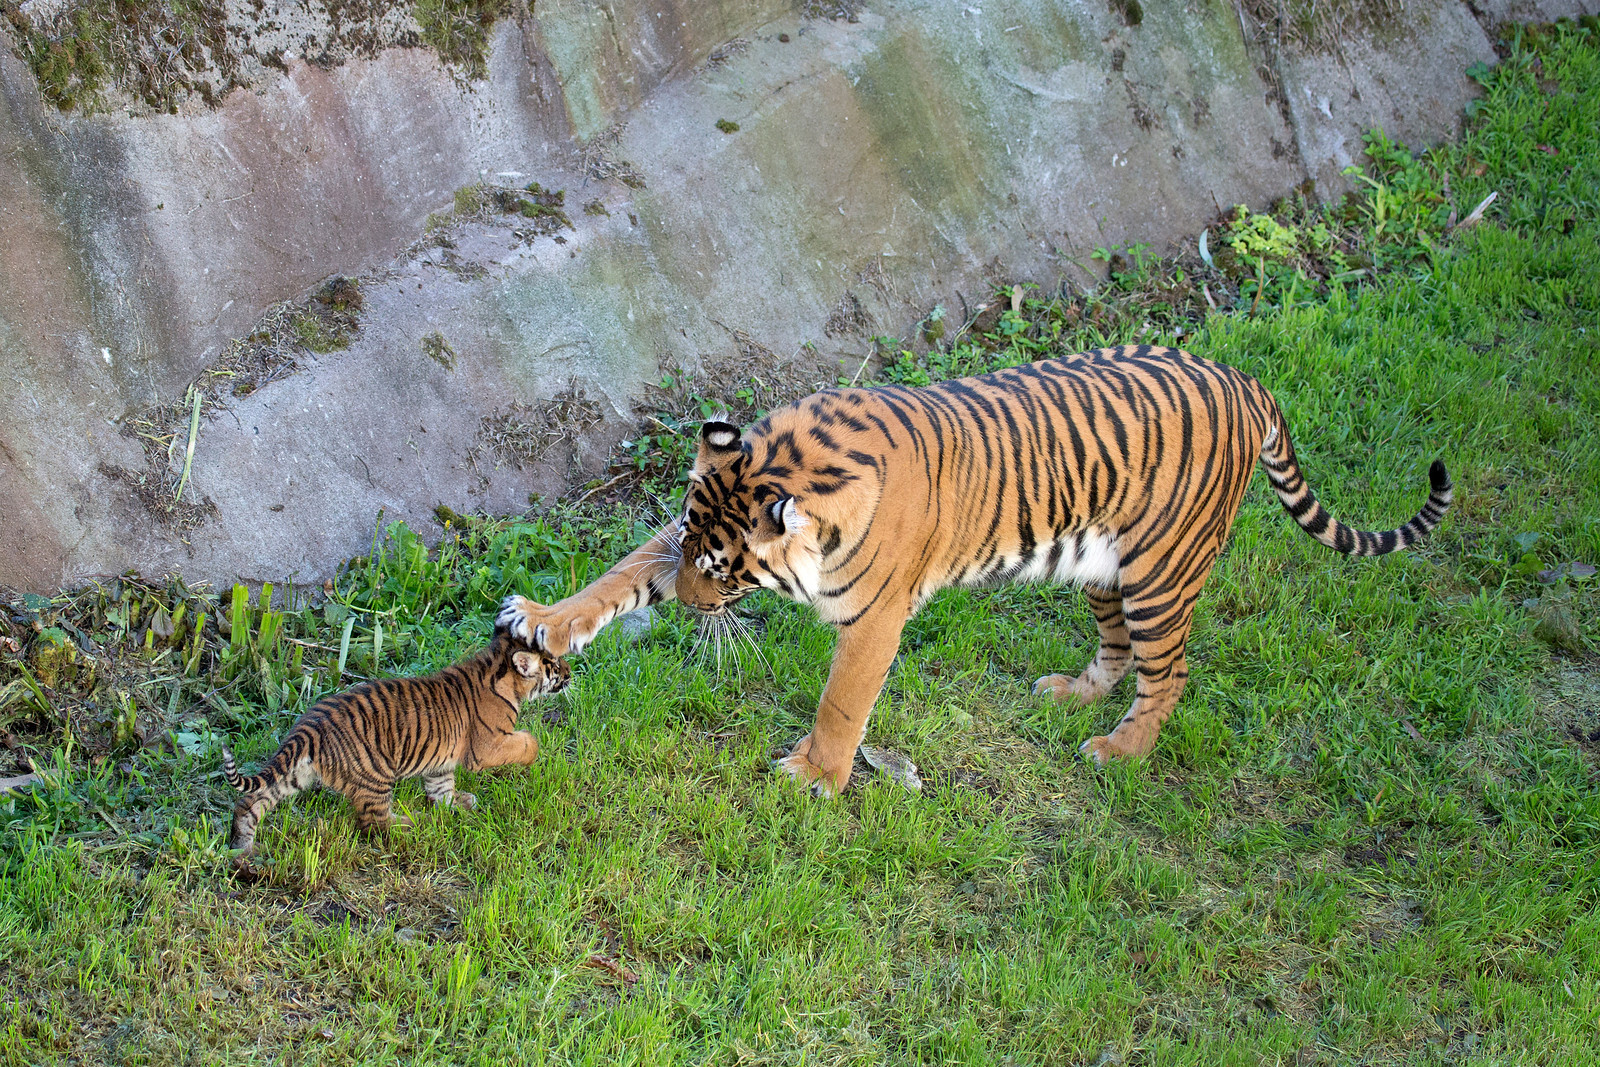 The San Francisco Zoo, located near the Great Highway, is home to more than 1,000 exotic, endangered and rescued animals.